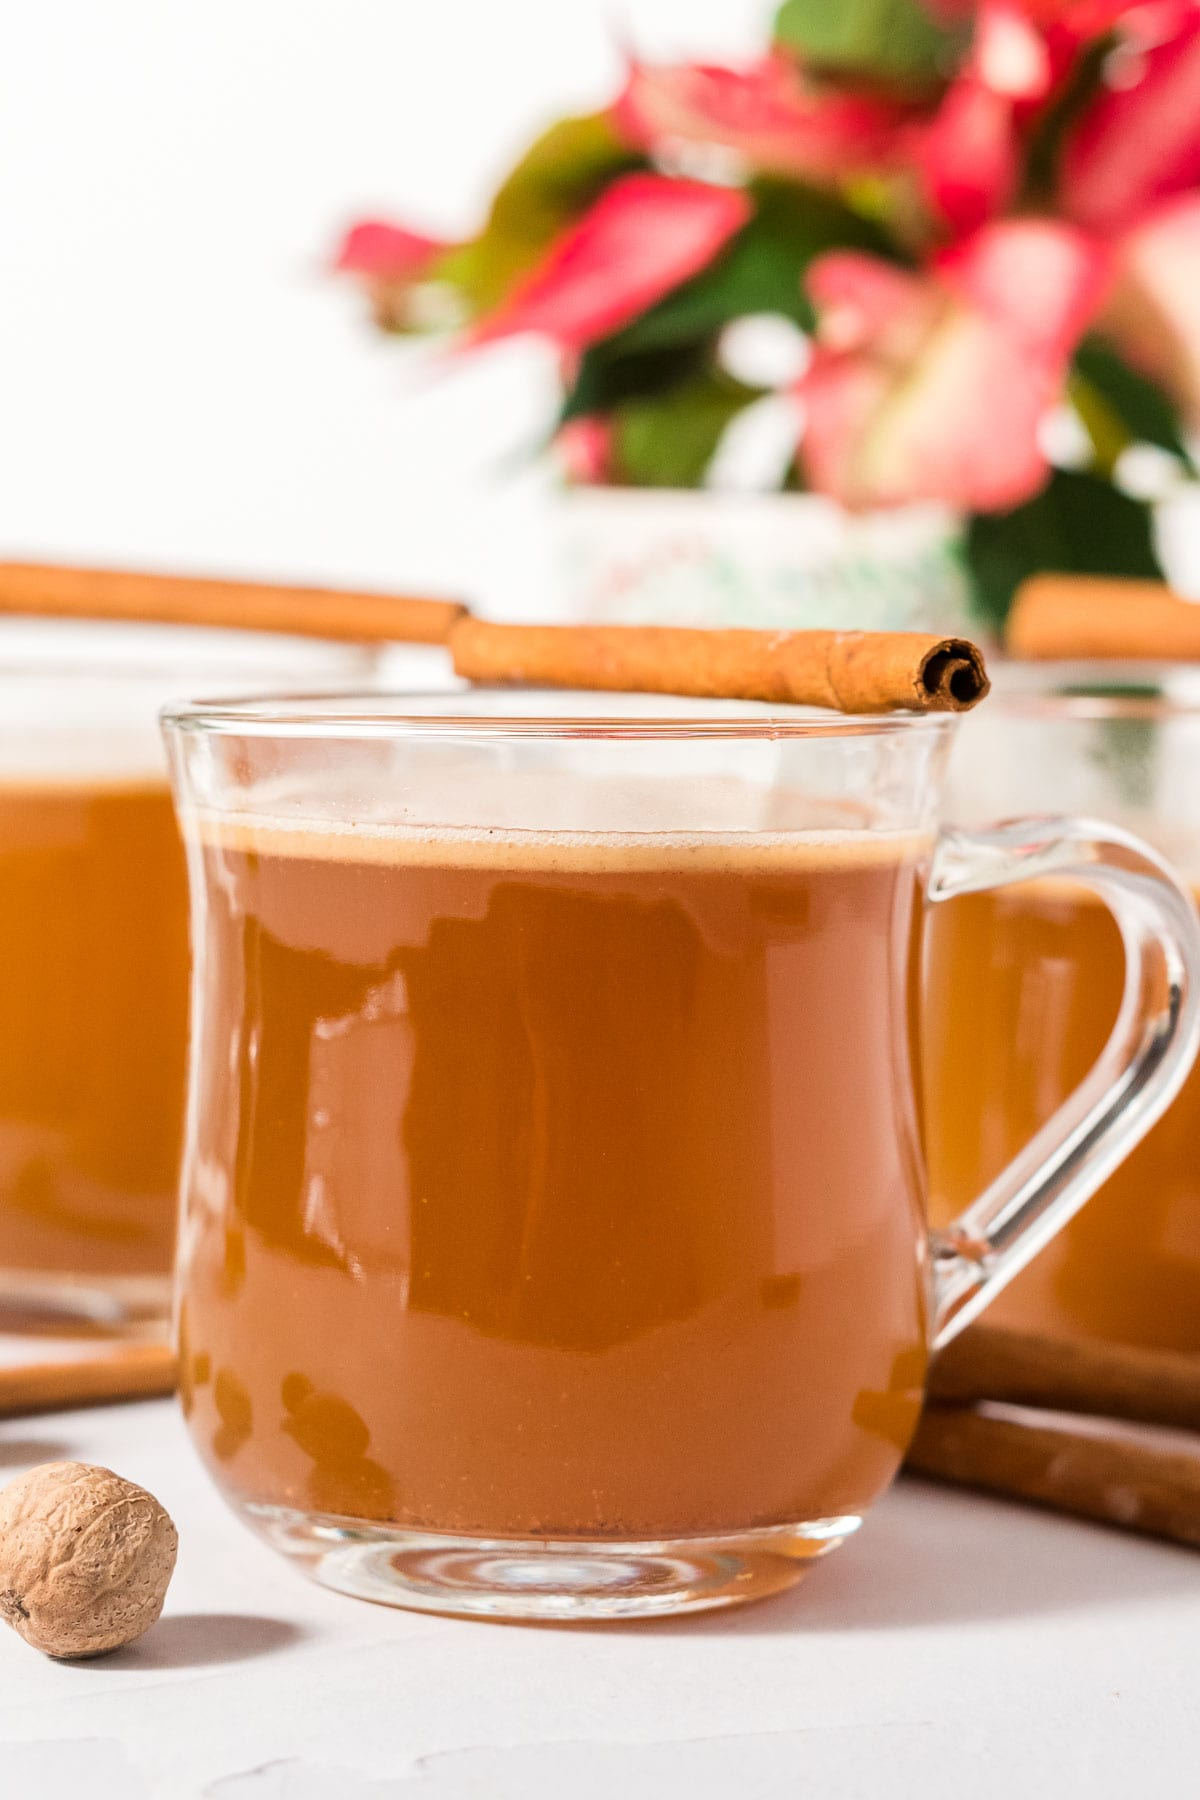 Three mugs of hot buttered rum garnished with cinnamon sticks.